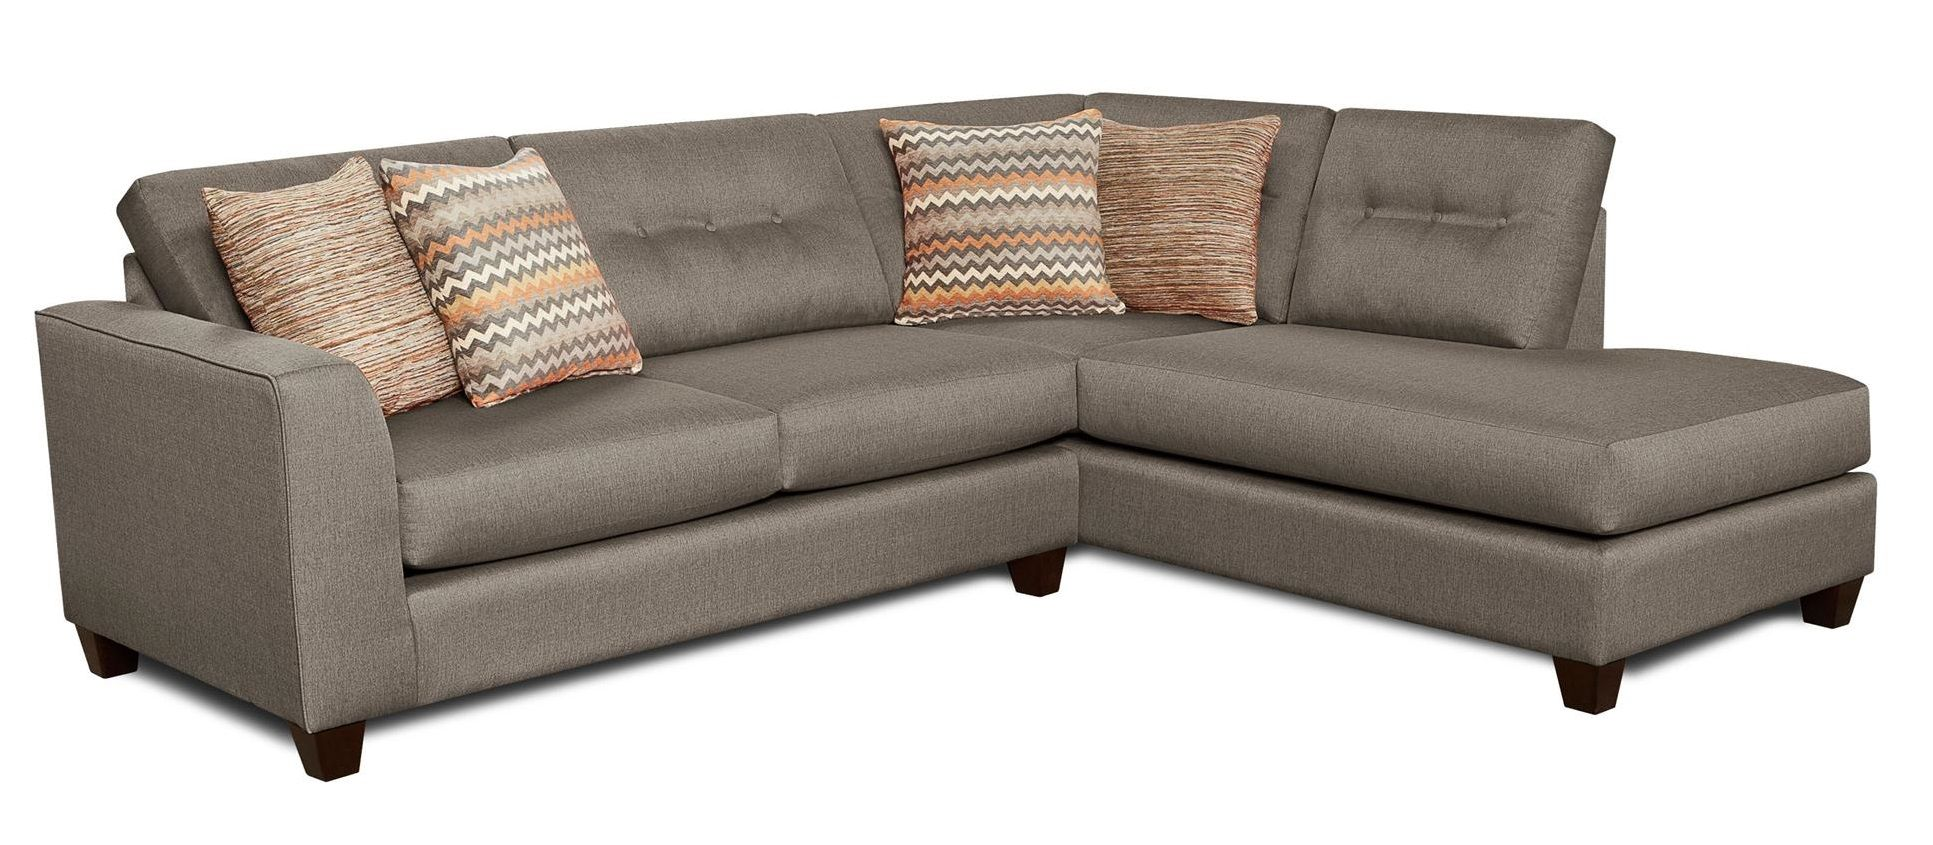 Erin Sectional 1515 1516 Sectionals From Fusion At With